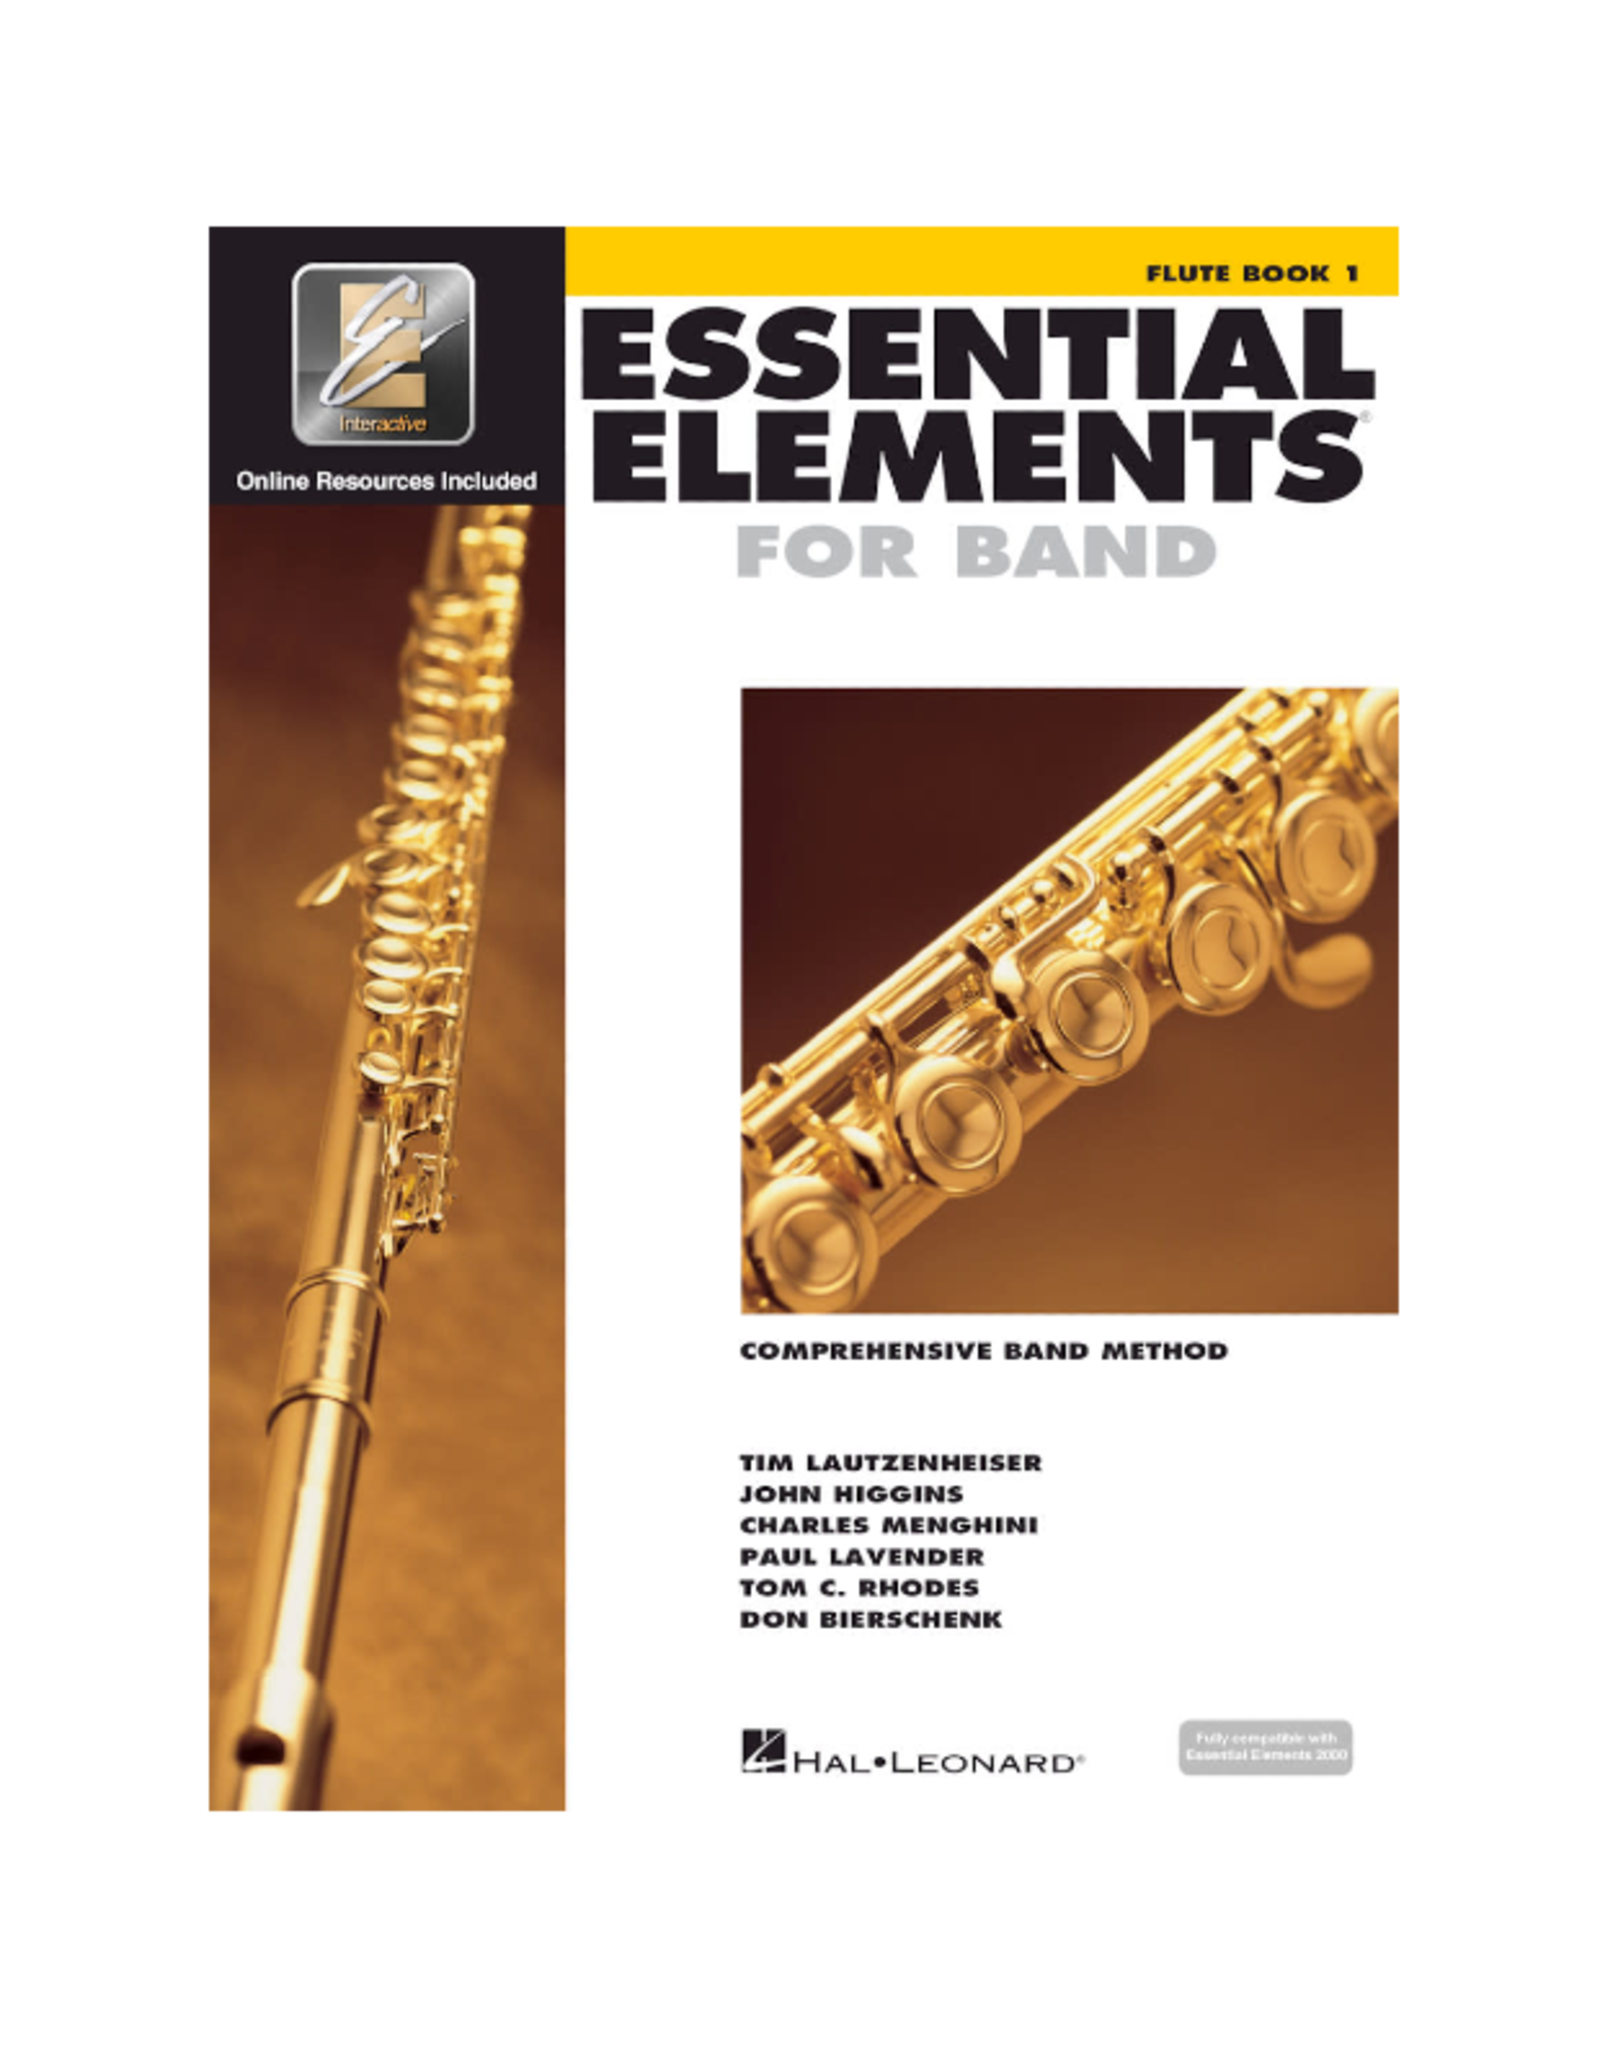 Essential Elements Essential Elements for Band – Flute Book 1 with EEi